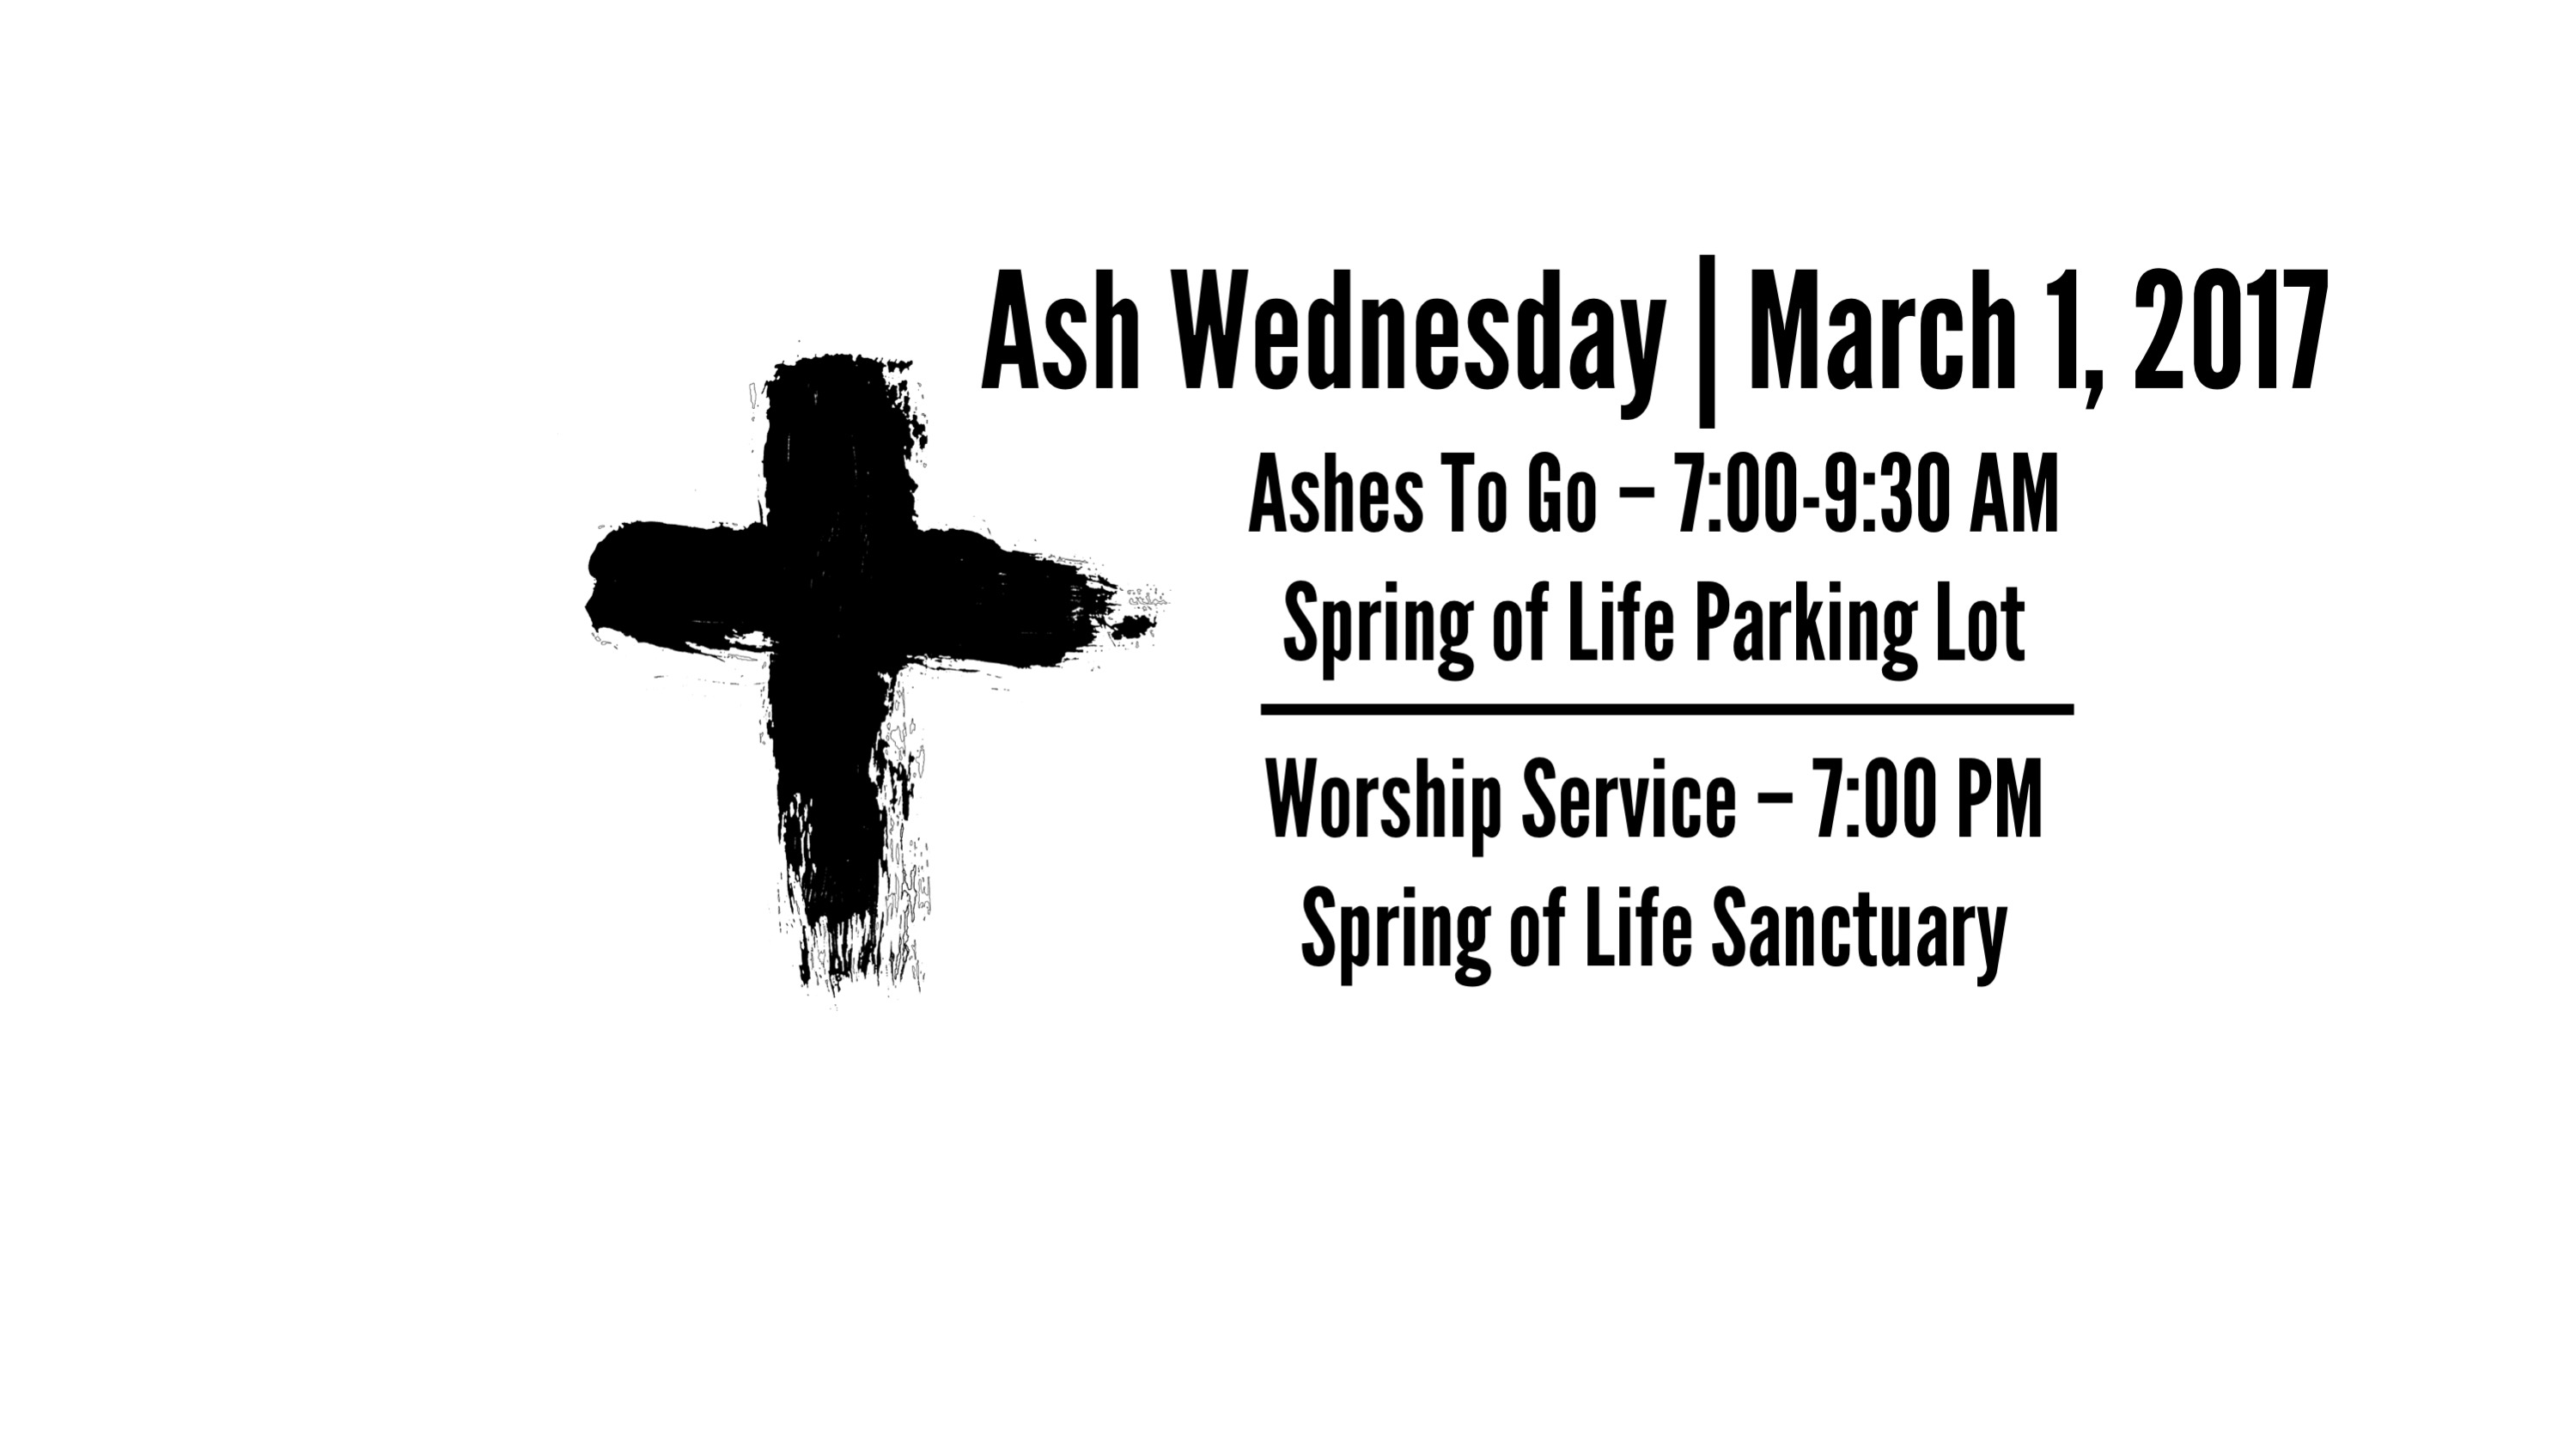 Ashes To Go (7 am) and Ash Wednesday Service (7 pm